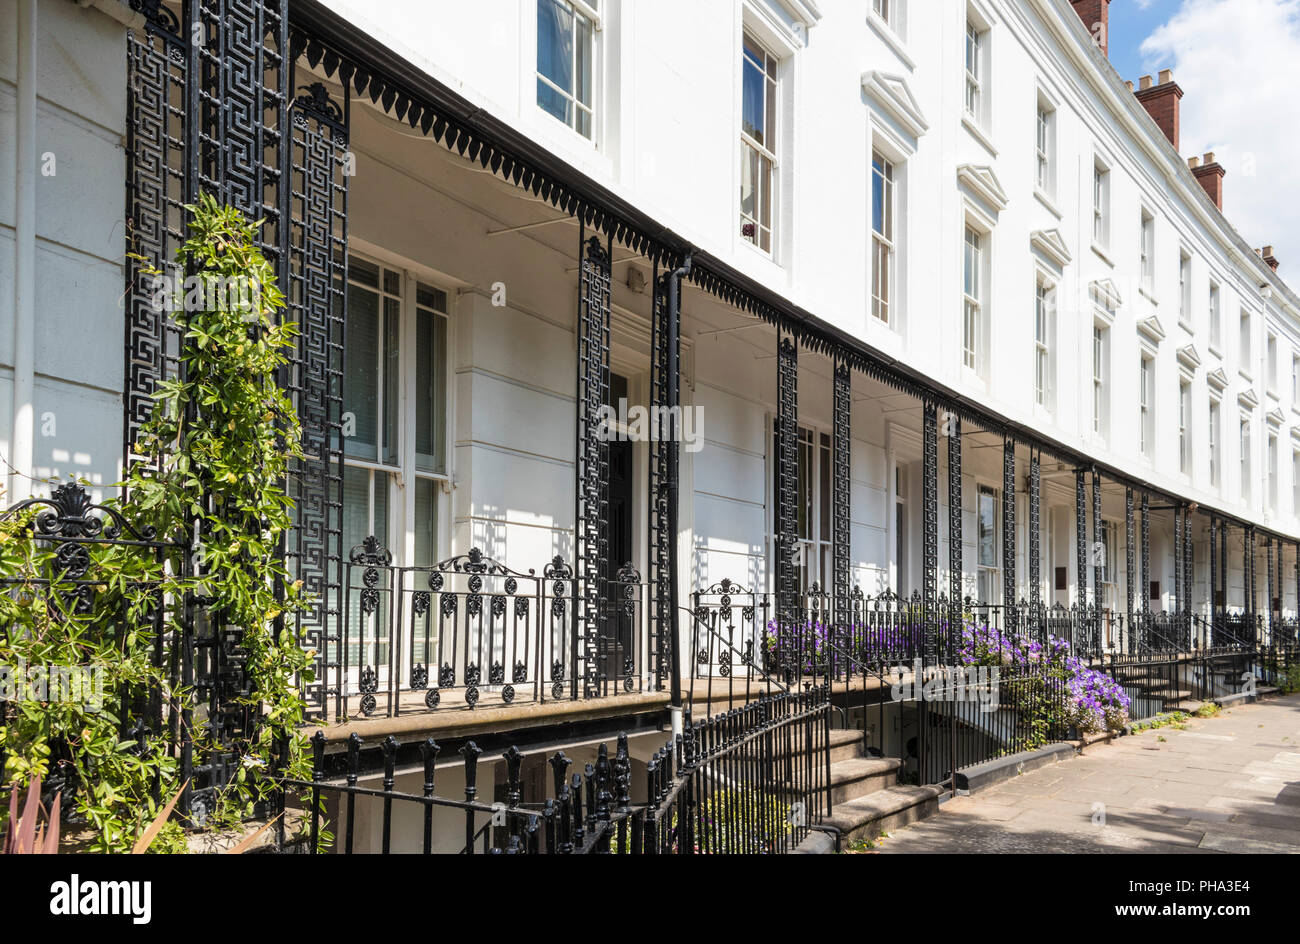 Casas en Leamington Spa Royal Leamington Spa ciudad arquitectura Regency rejas y balcones en Leamington Spa, Warwickshire Inglaterra GB Europa Imagen De Stock